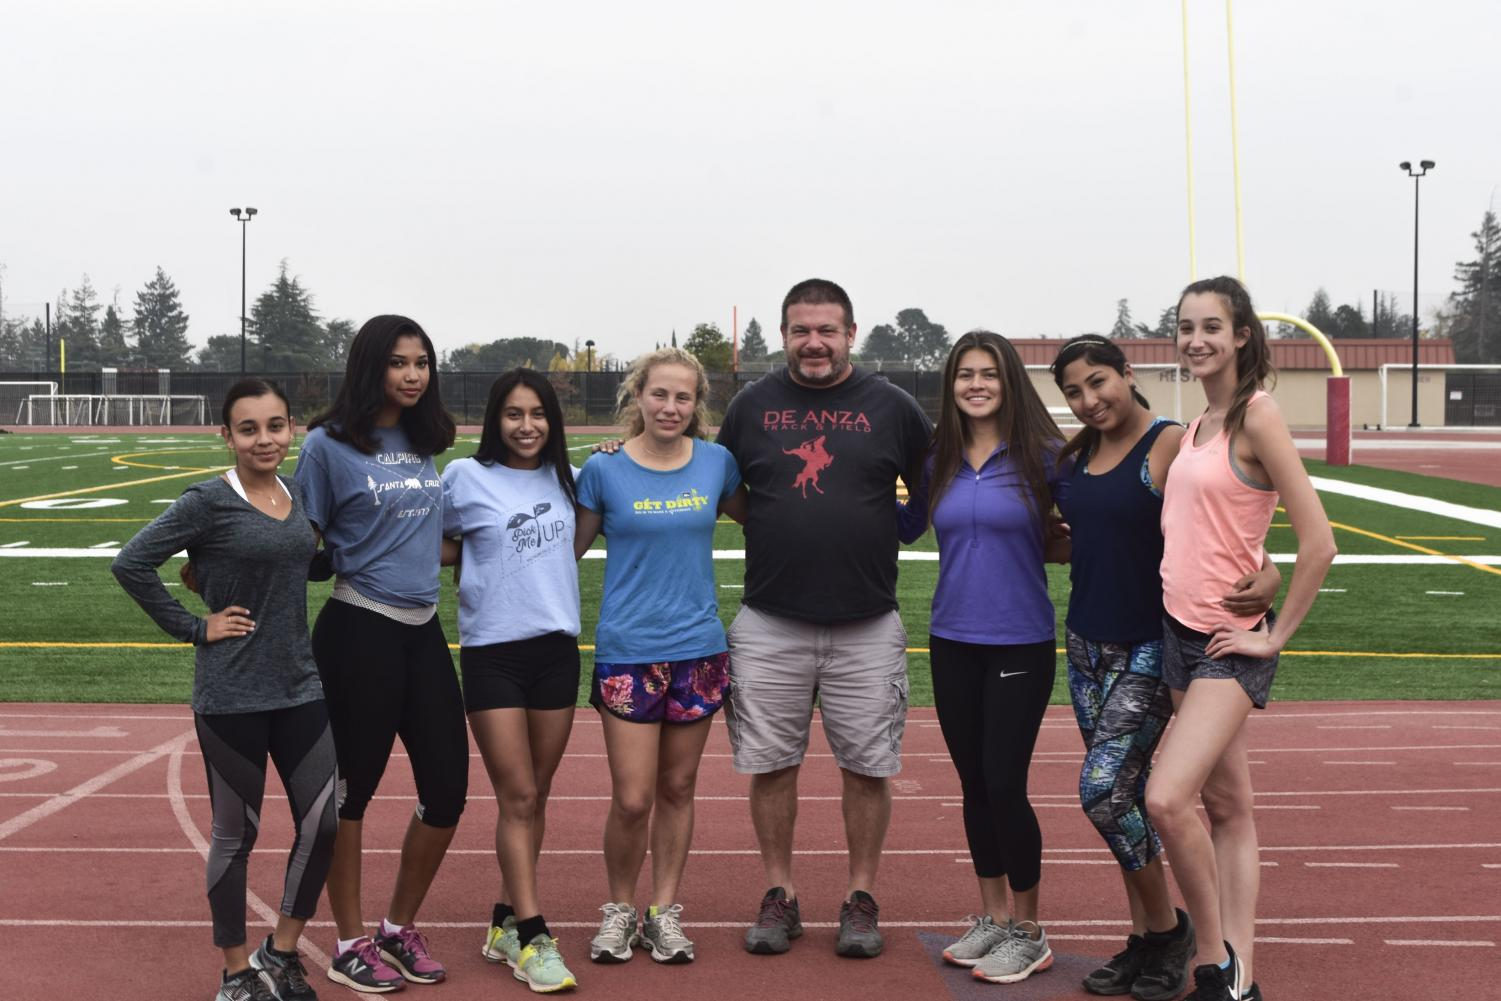 The women's cross country team poses together with their coach.